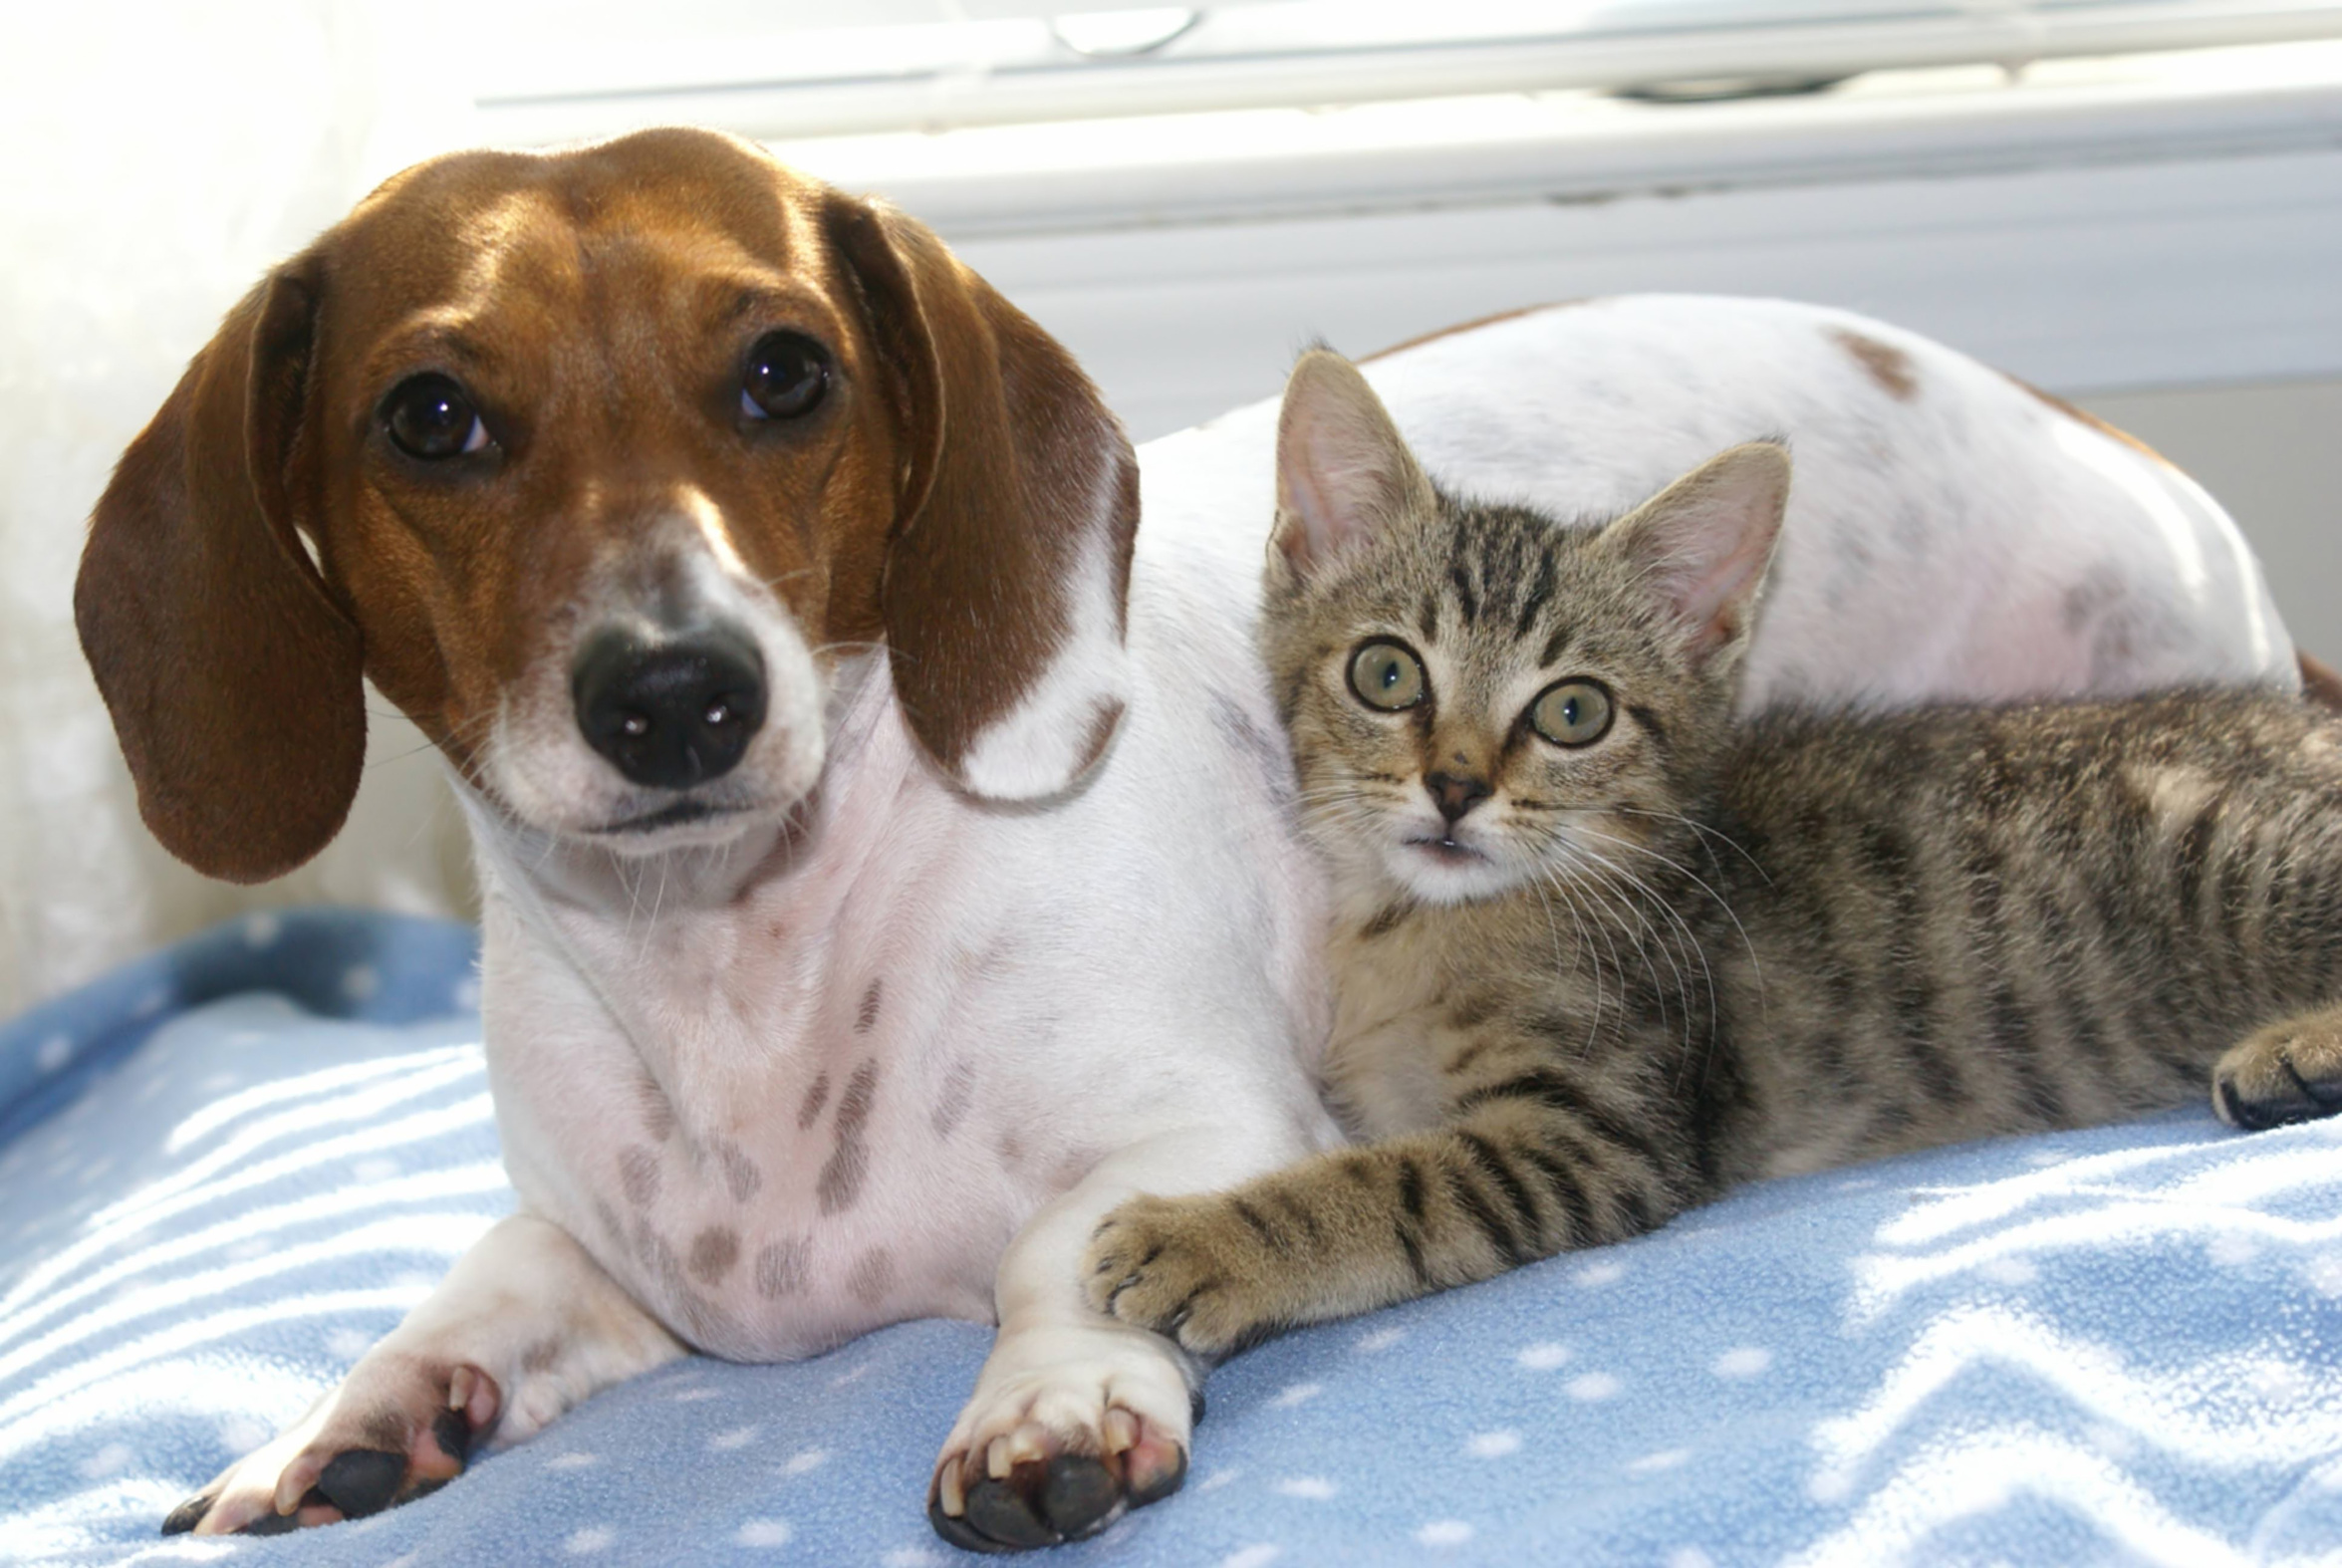 Pet Friendly Hotels 187 Small Animal Hospital 187 College Of